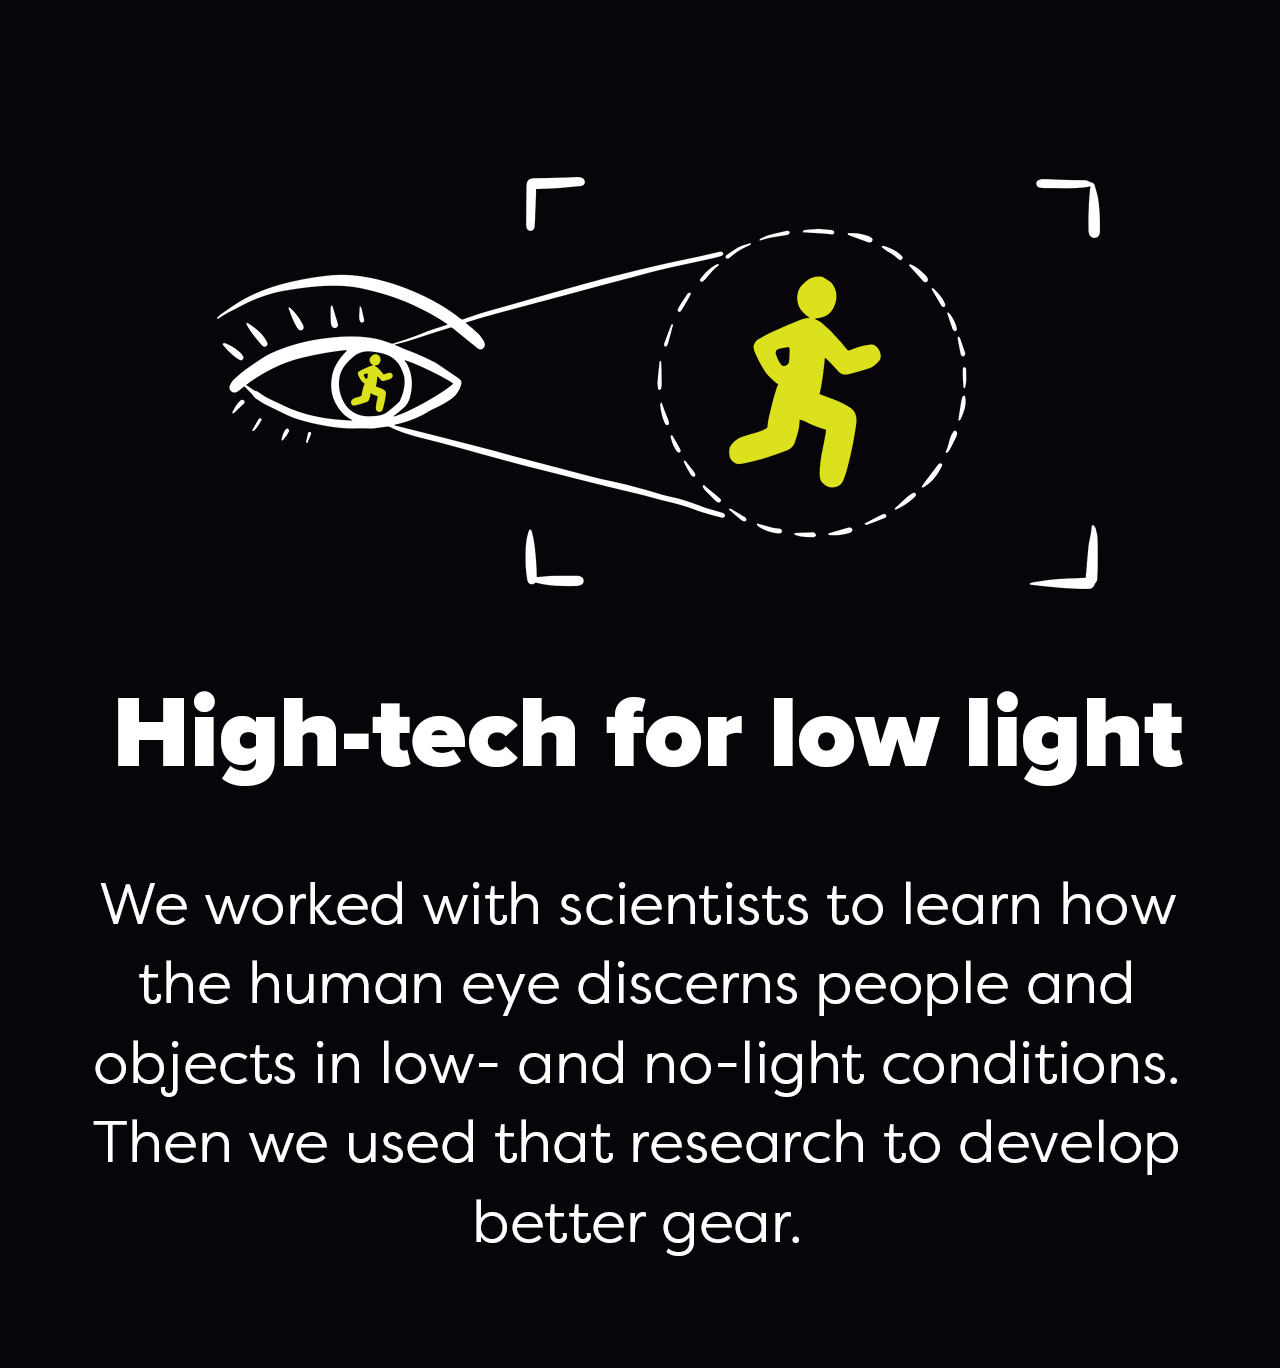 High-tech for low light   We worked with scientists to learn how the human eye discerns people and objects in low- and no-light conditions. Then we used that research to develop better gear.